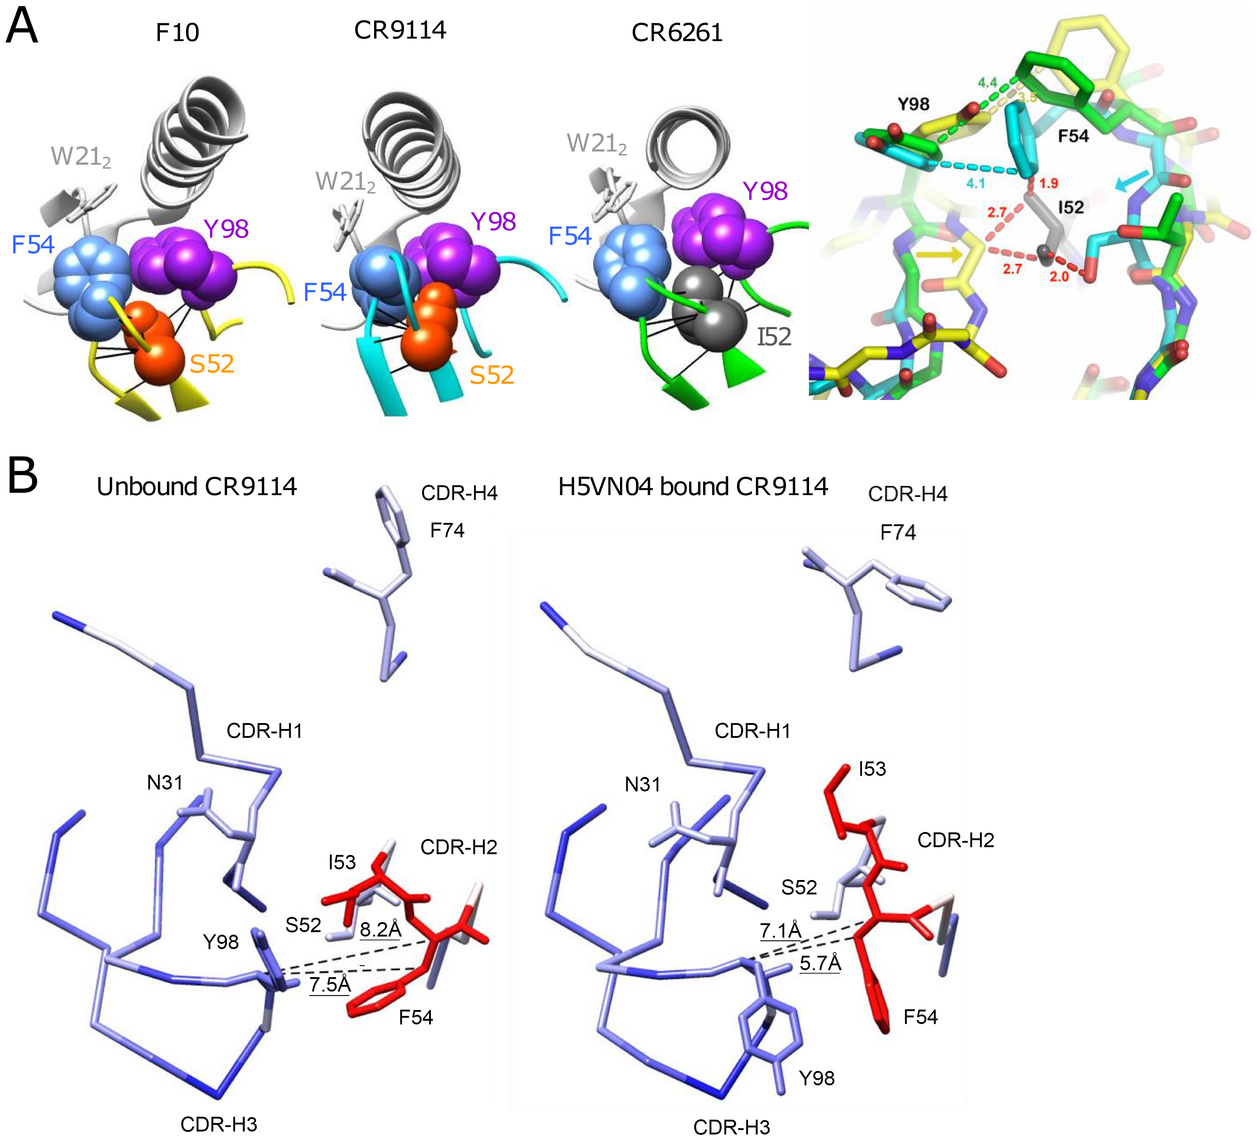 Understanding the structural role of the distinctive CDR-H2 amino acid substitutions in HV1-69-sBnAbs.